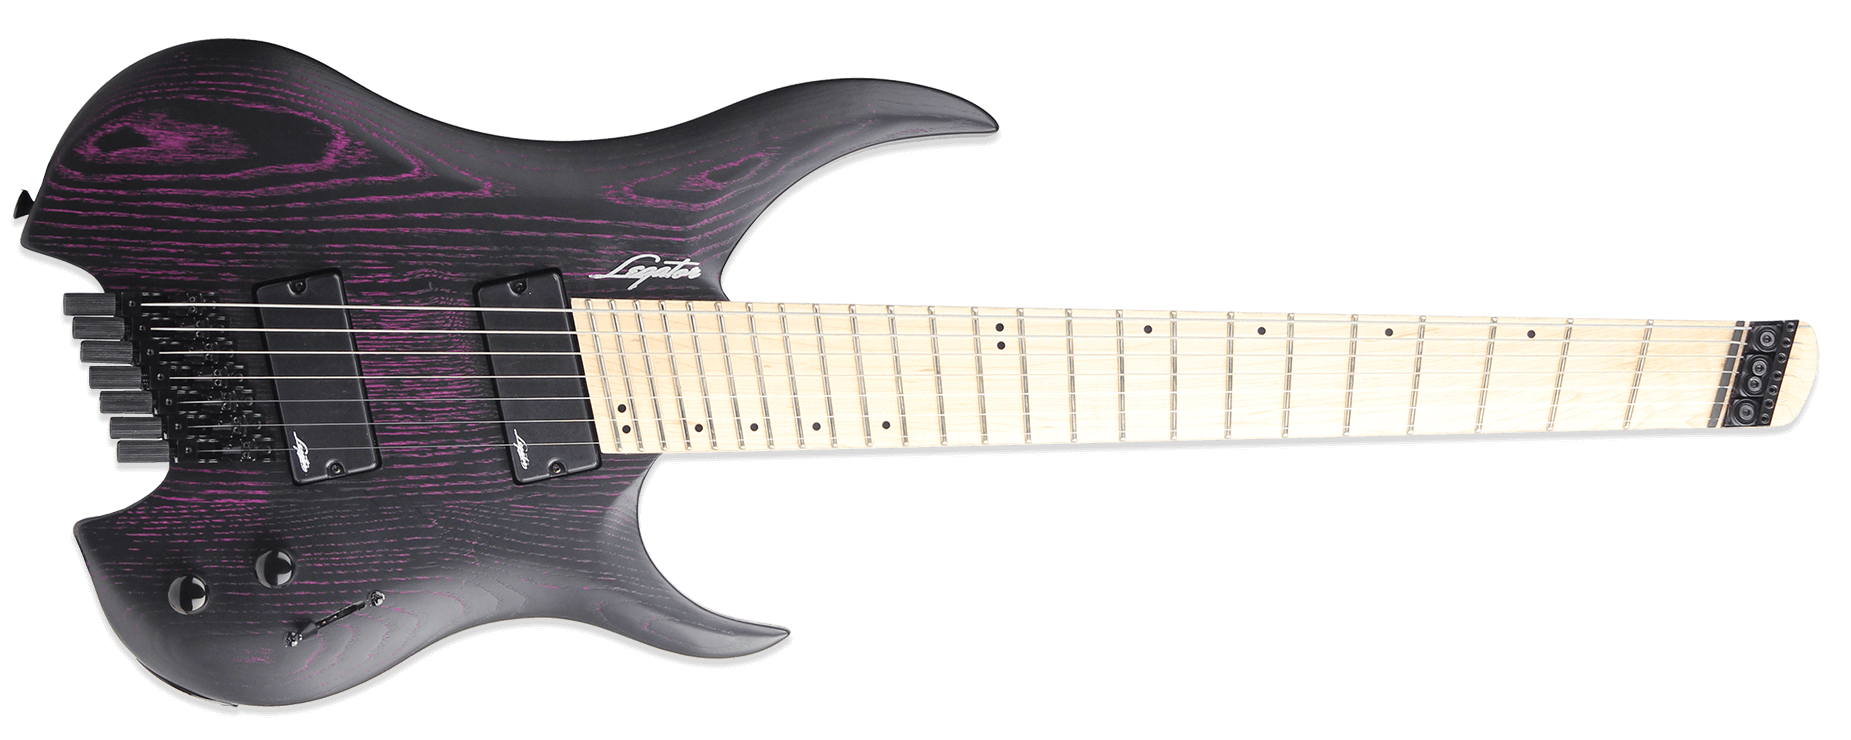 Legator Ghost 200-SE 7 Washed Purple Ash